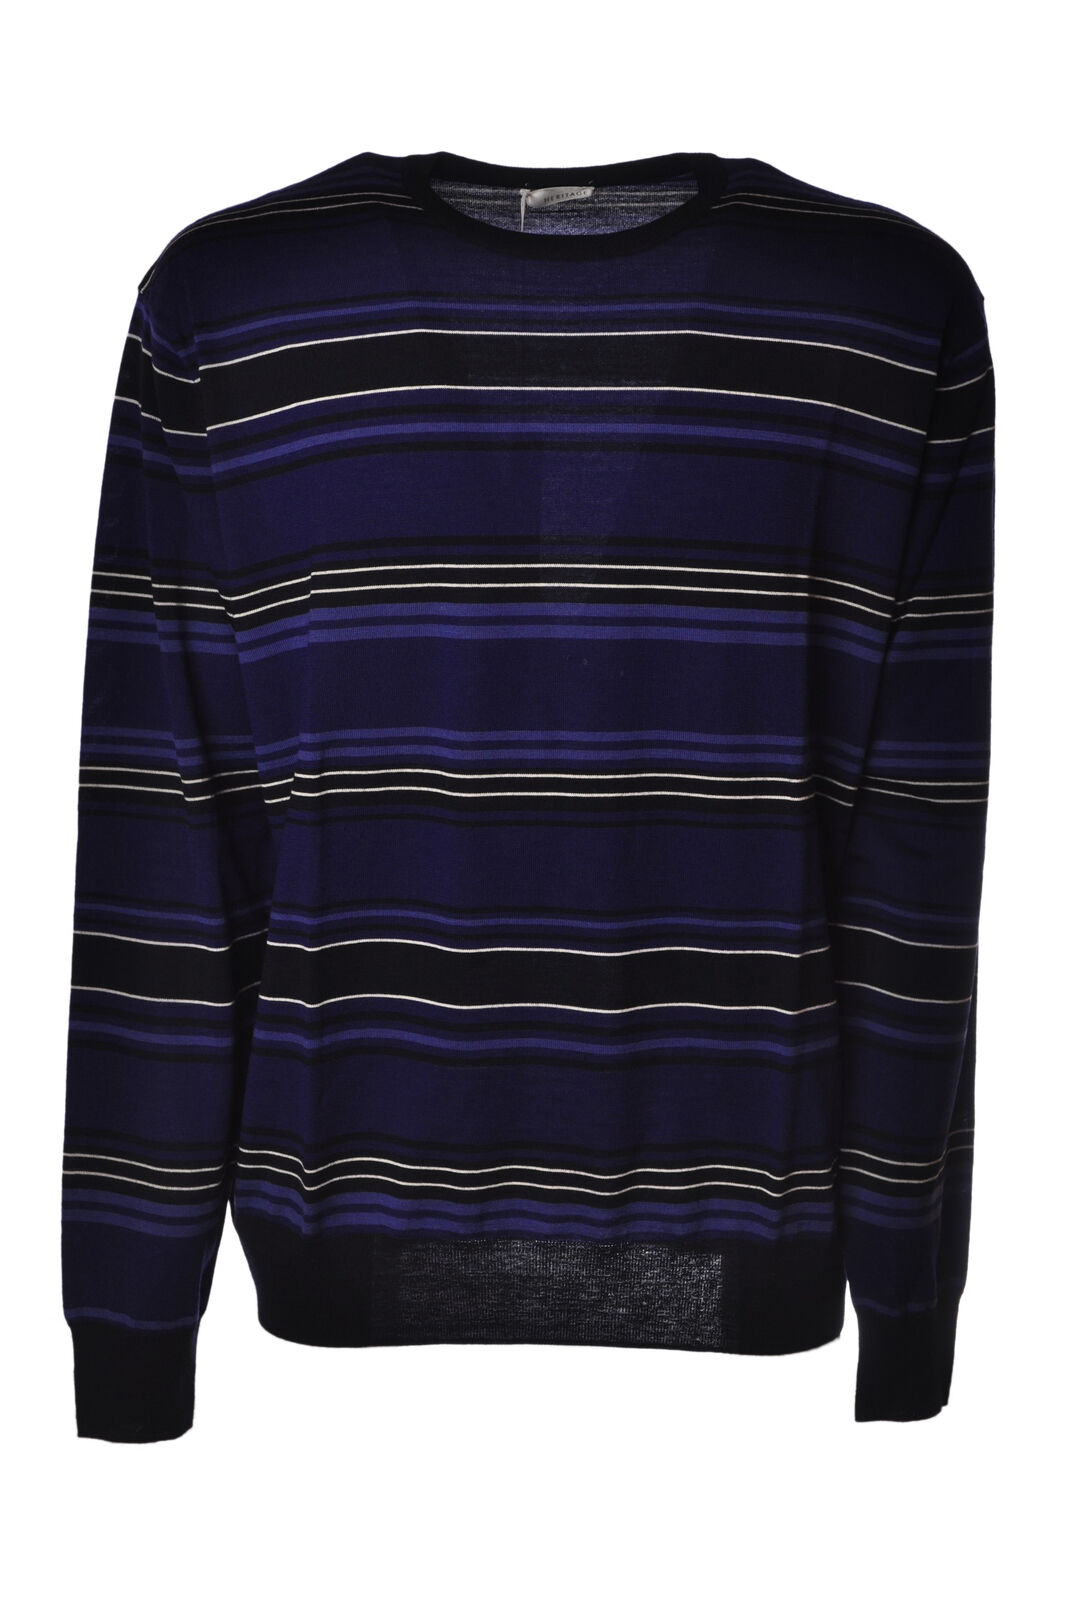 Heritage  -  Sweaters - Male - Fantasy - 4679421A180031